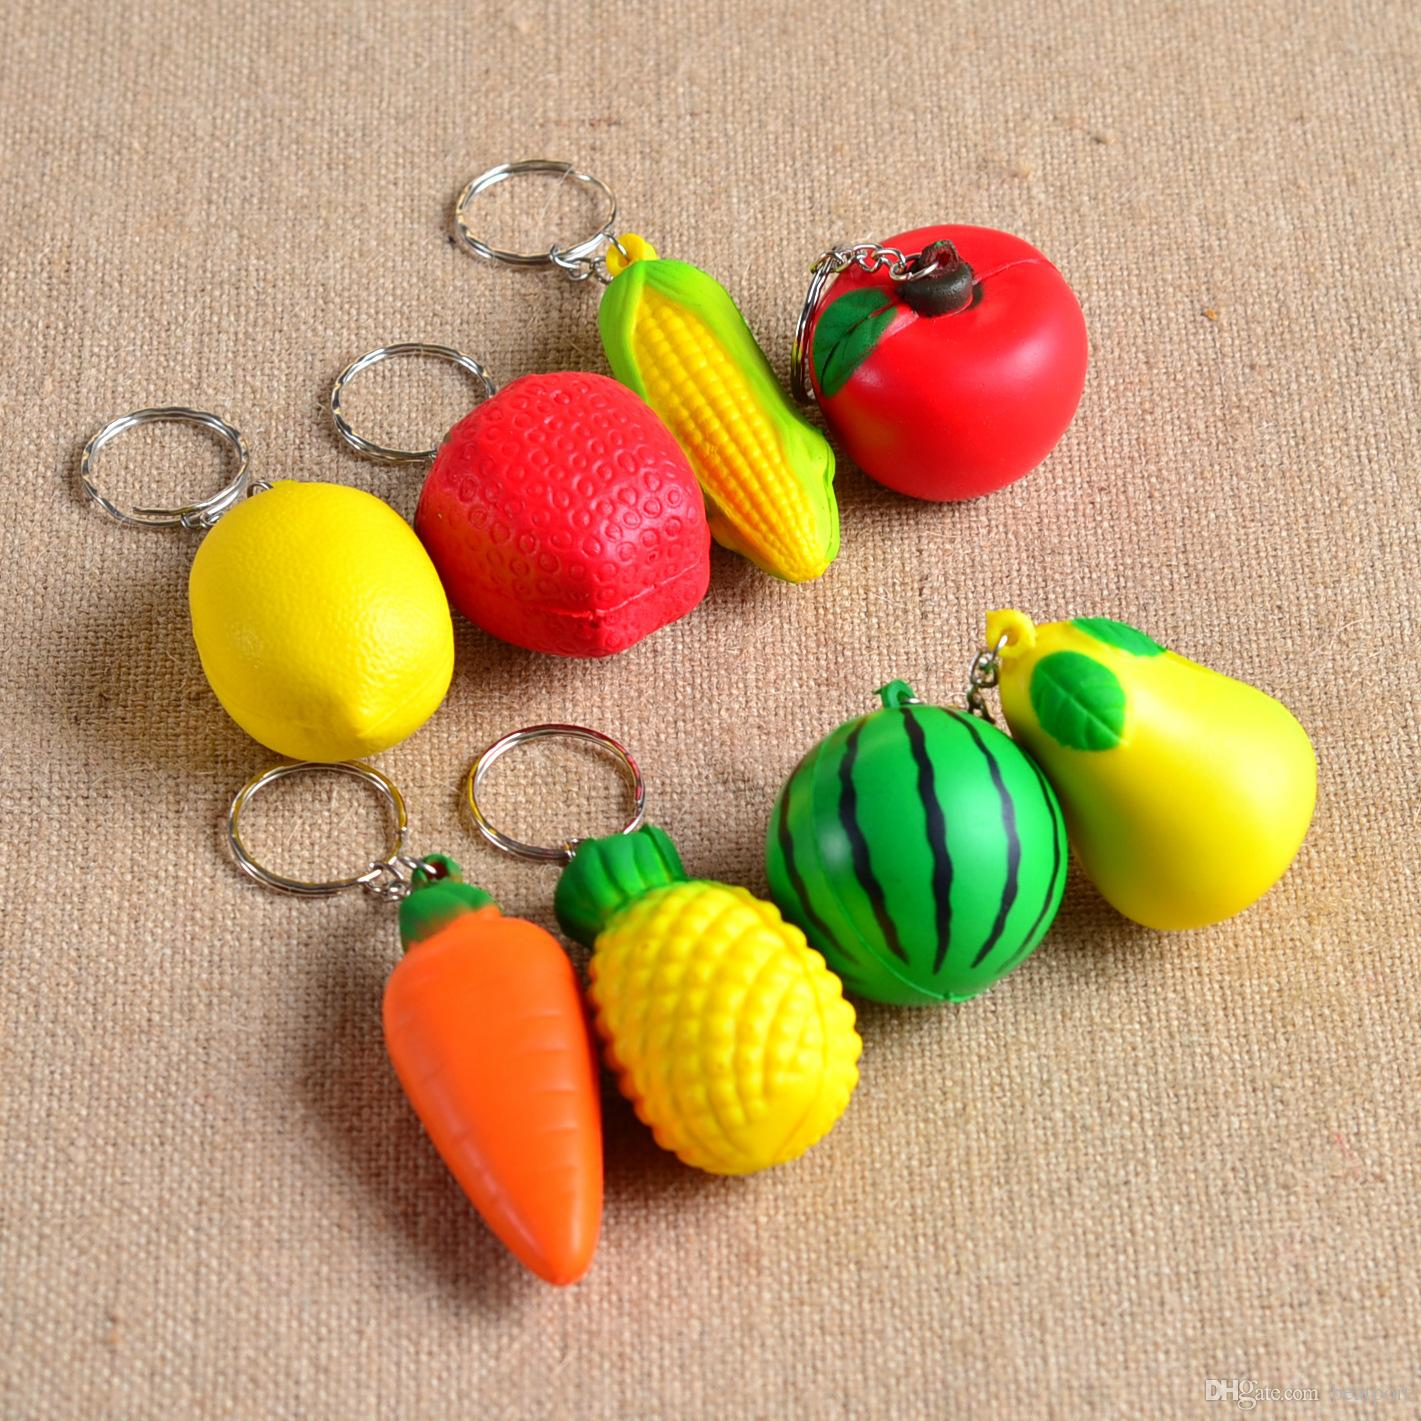 squishy fruits lemonshop  (12).JPG